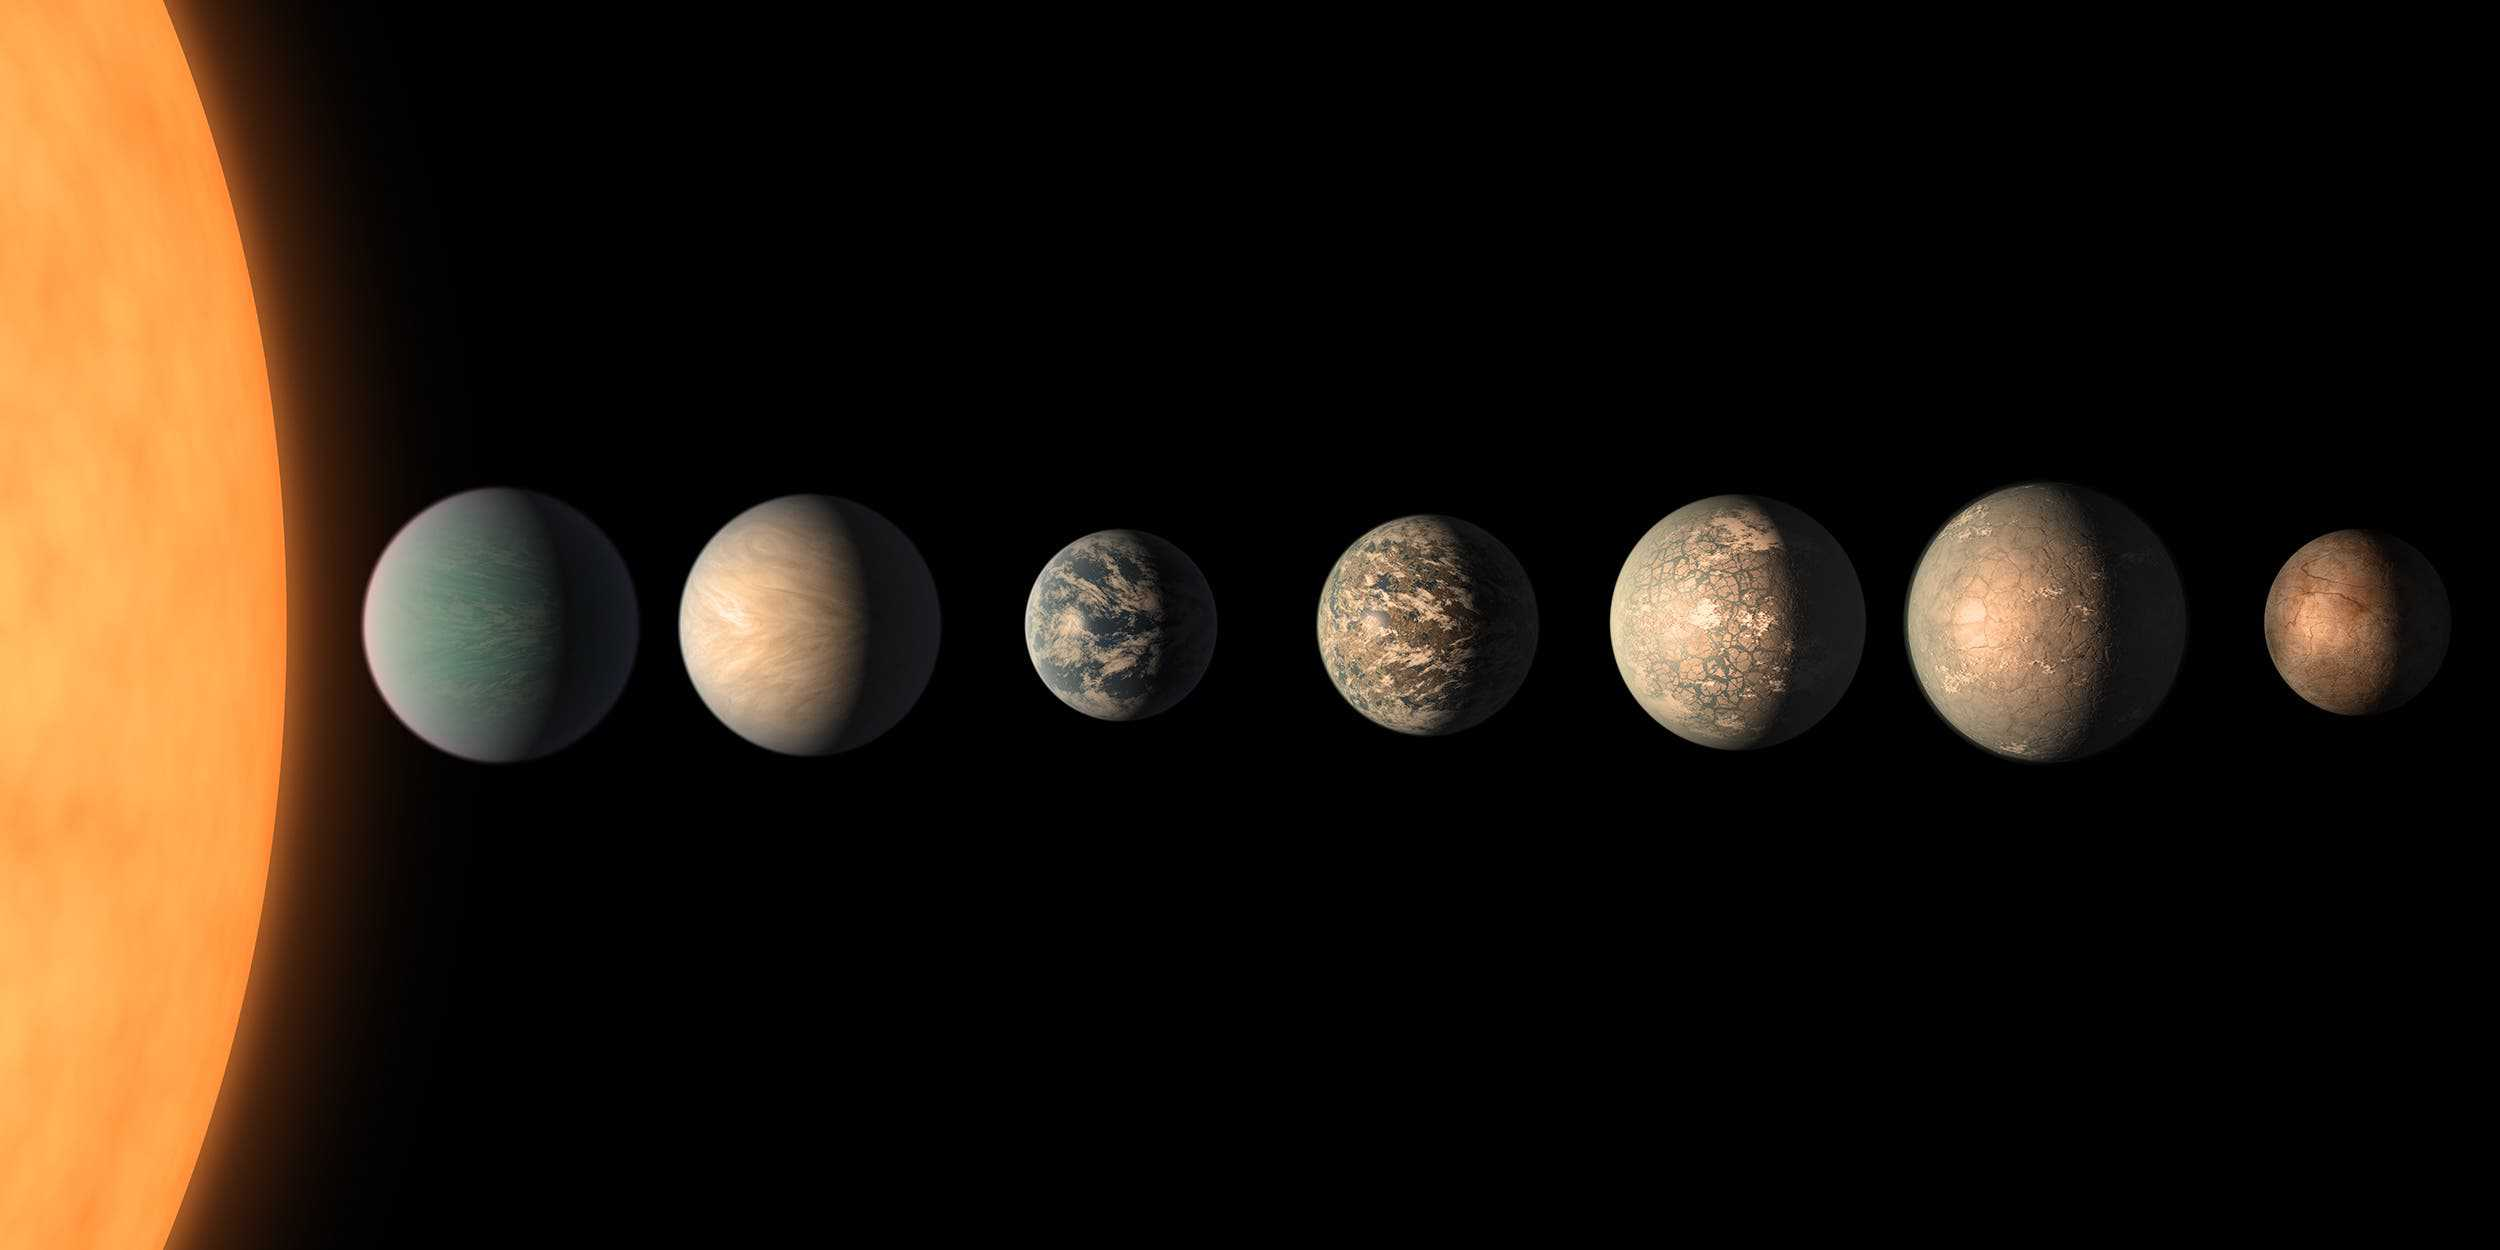 New Research Shows That The Trappist 1 Planets Are Even